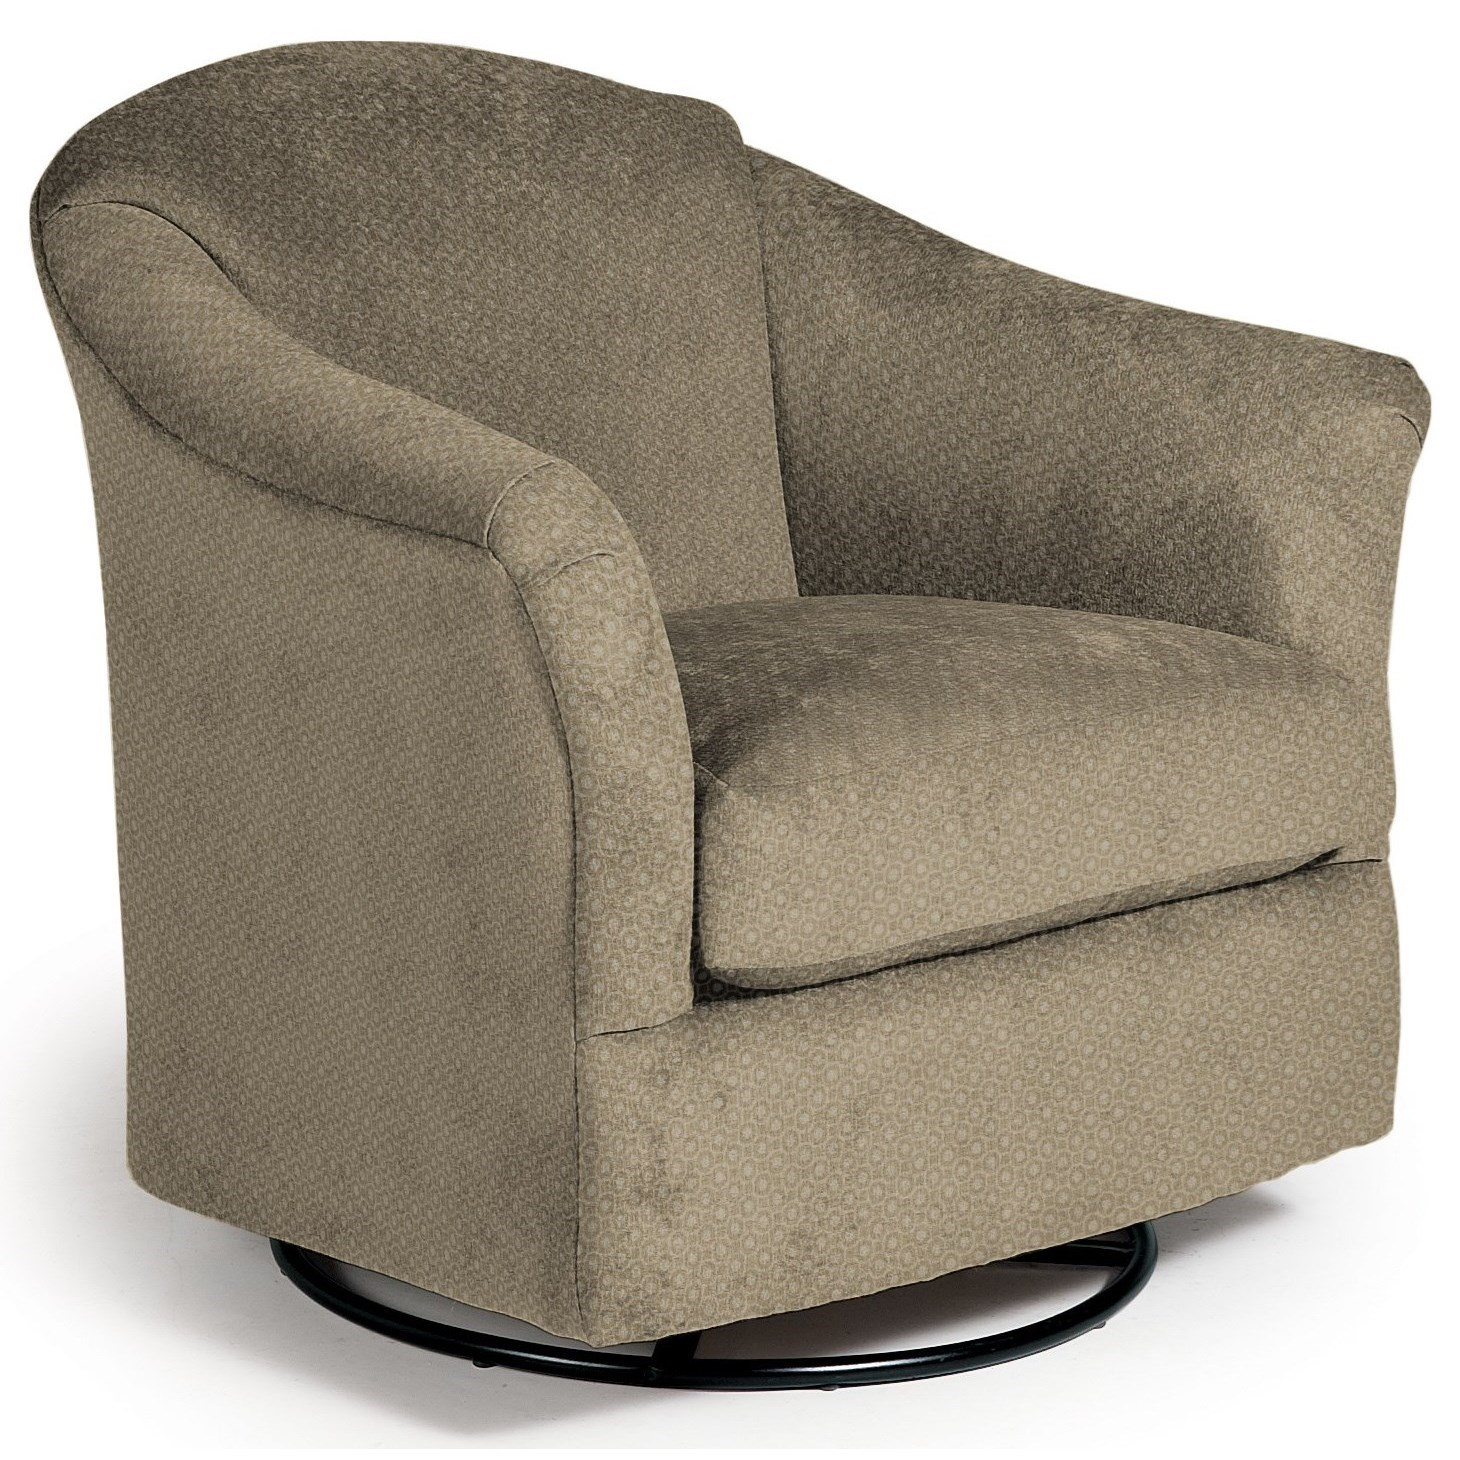 Swivel Glide Chairs Darby Swivel Glider by Best Home Furnishings at Michael Alan Furniture & Design